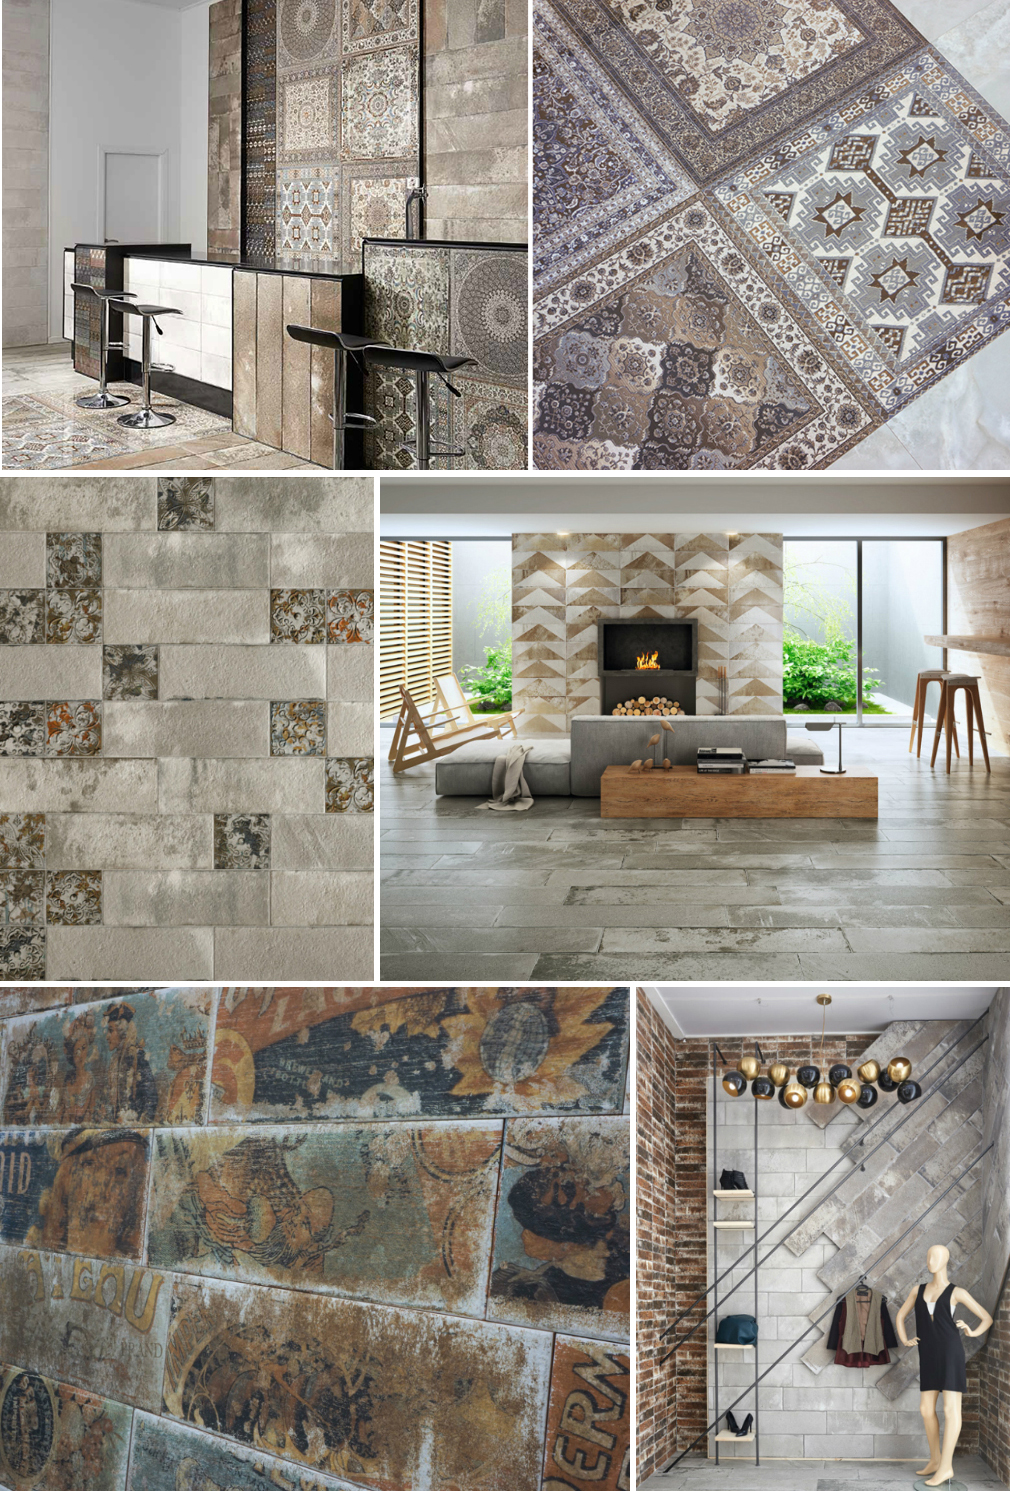 Ceramic and Porcelain Tiles by Ceramicas Aparici